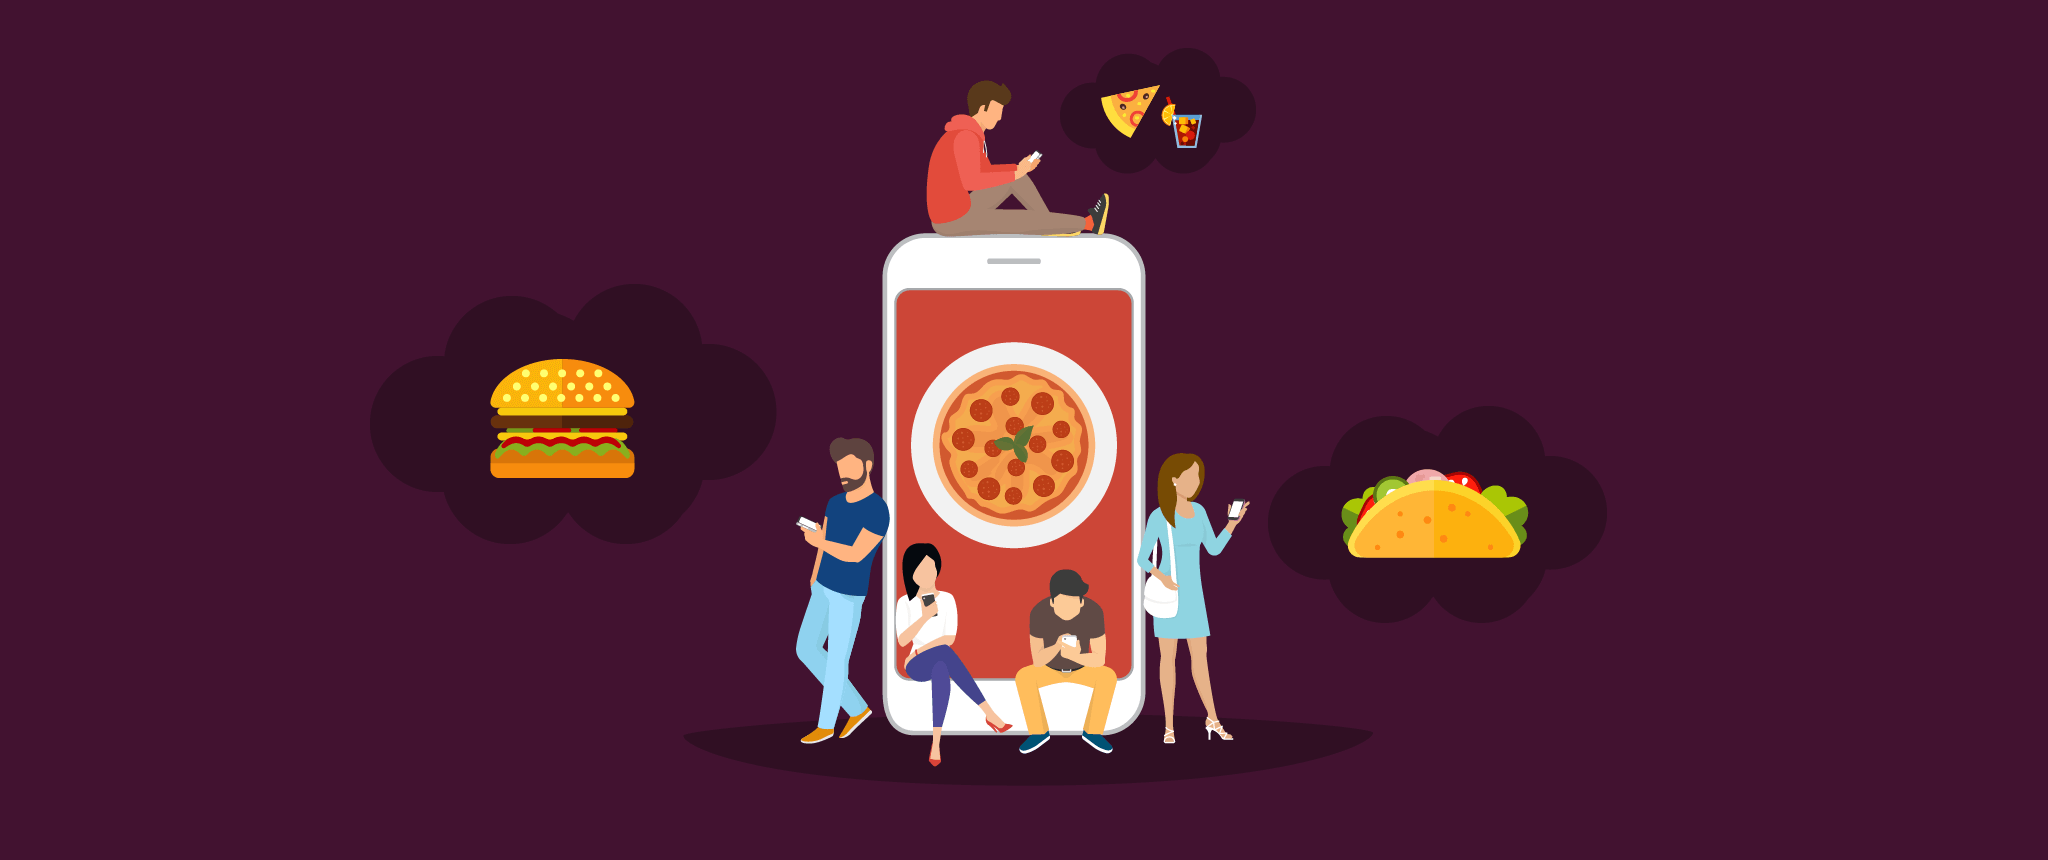 9 Tips to Accelerate User Acquisition for Food Tech Apps